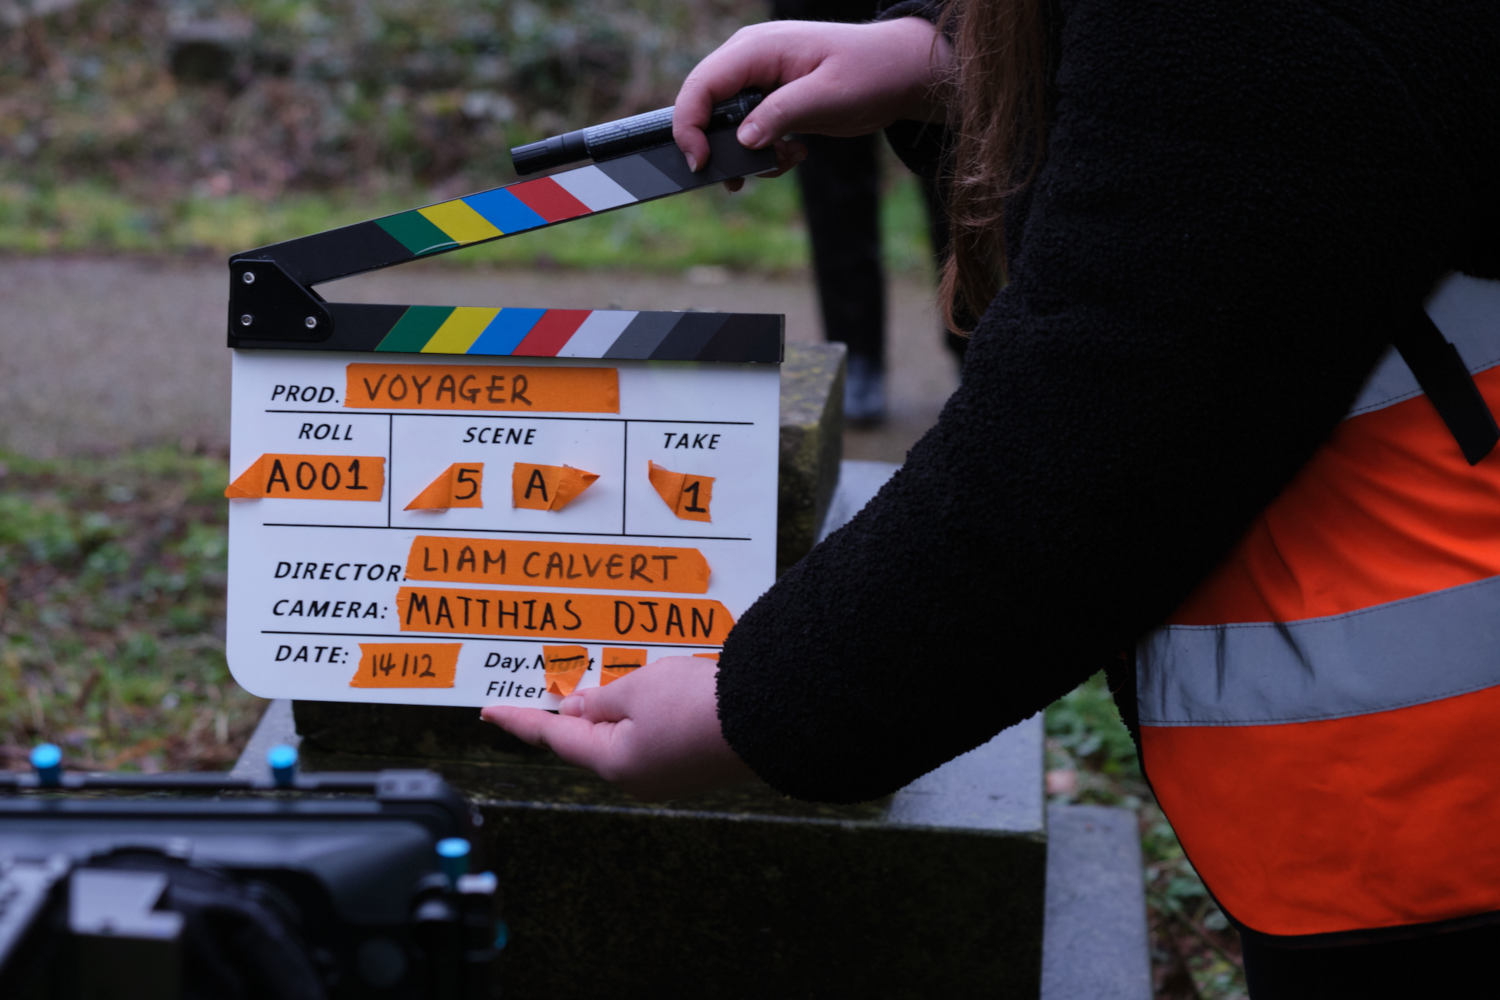 Behind the scenes image from Liam Calvert's Voyager short film showing the slate clapperboard